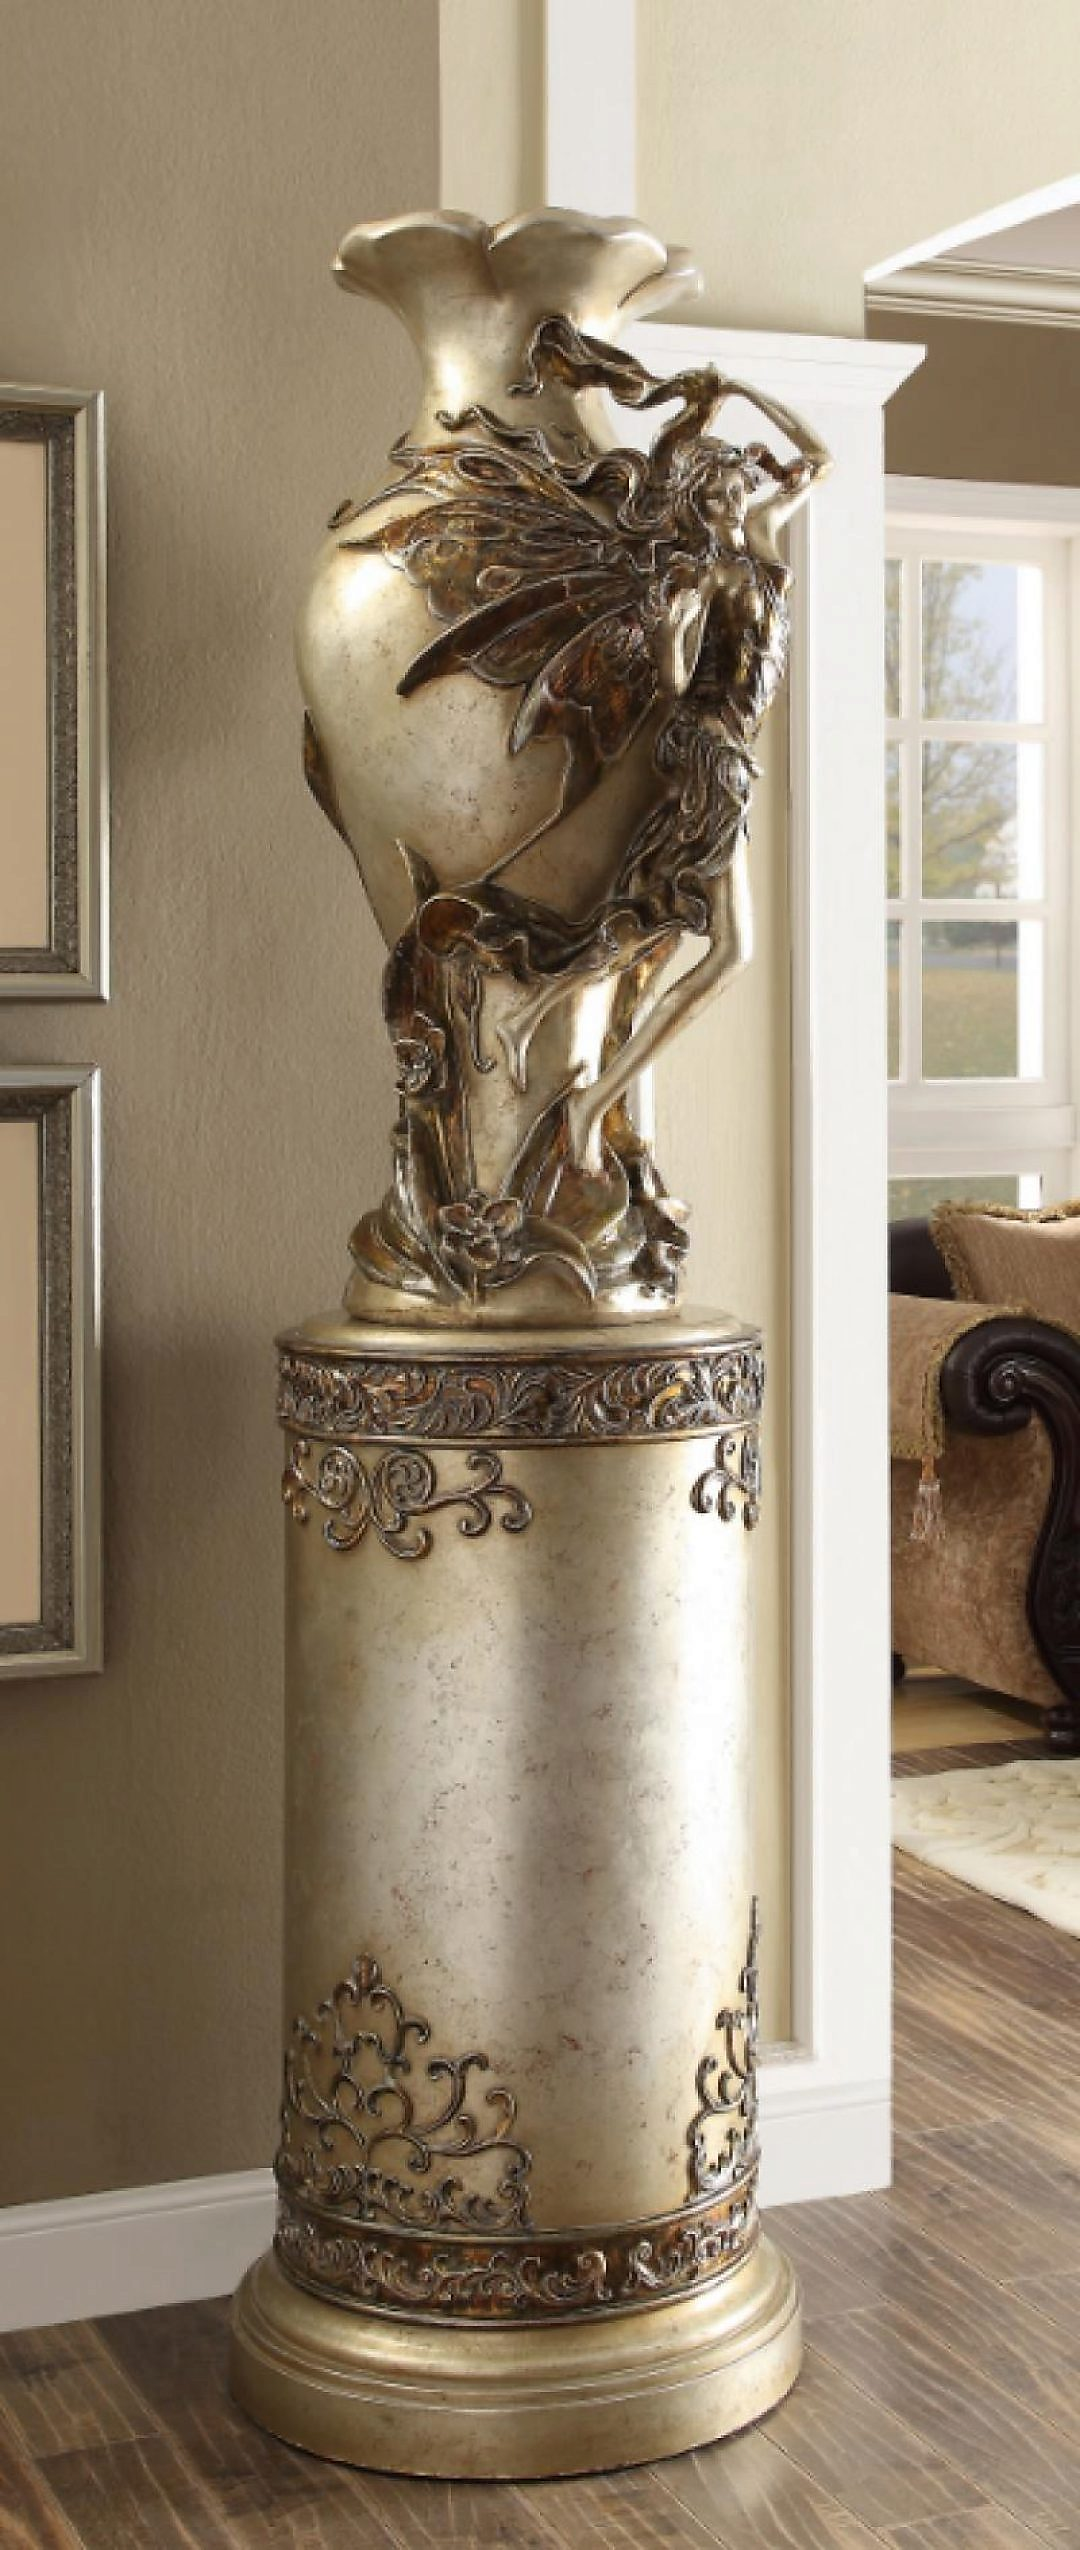 Traditional Luxurious Royal HD-1509 Flower Pedestal by Homey Design